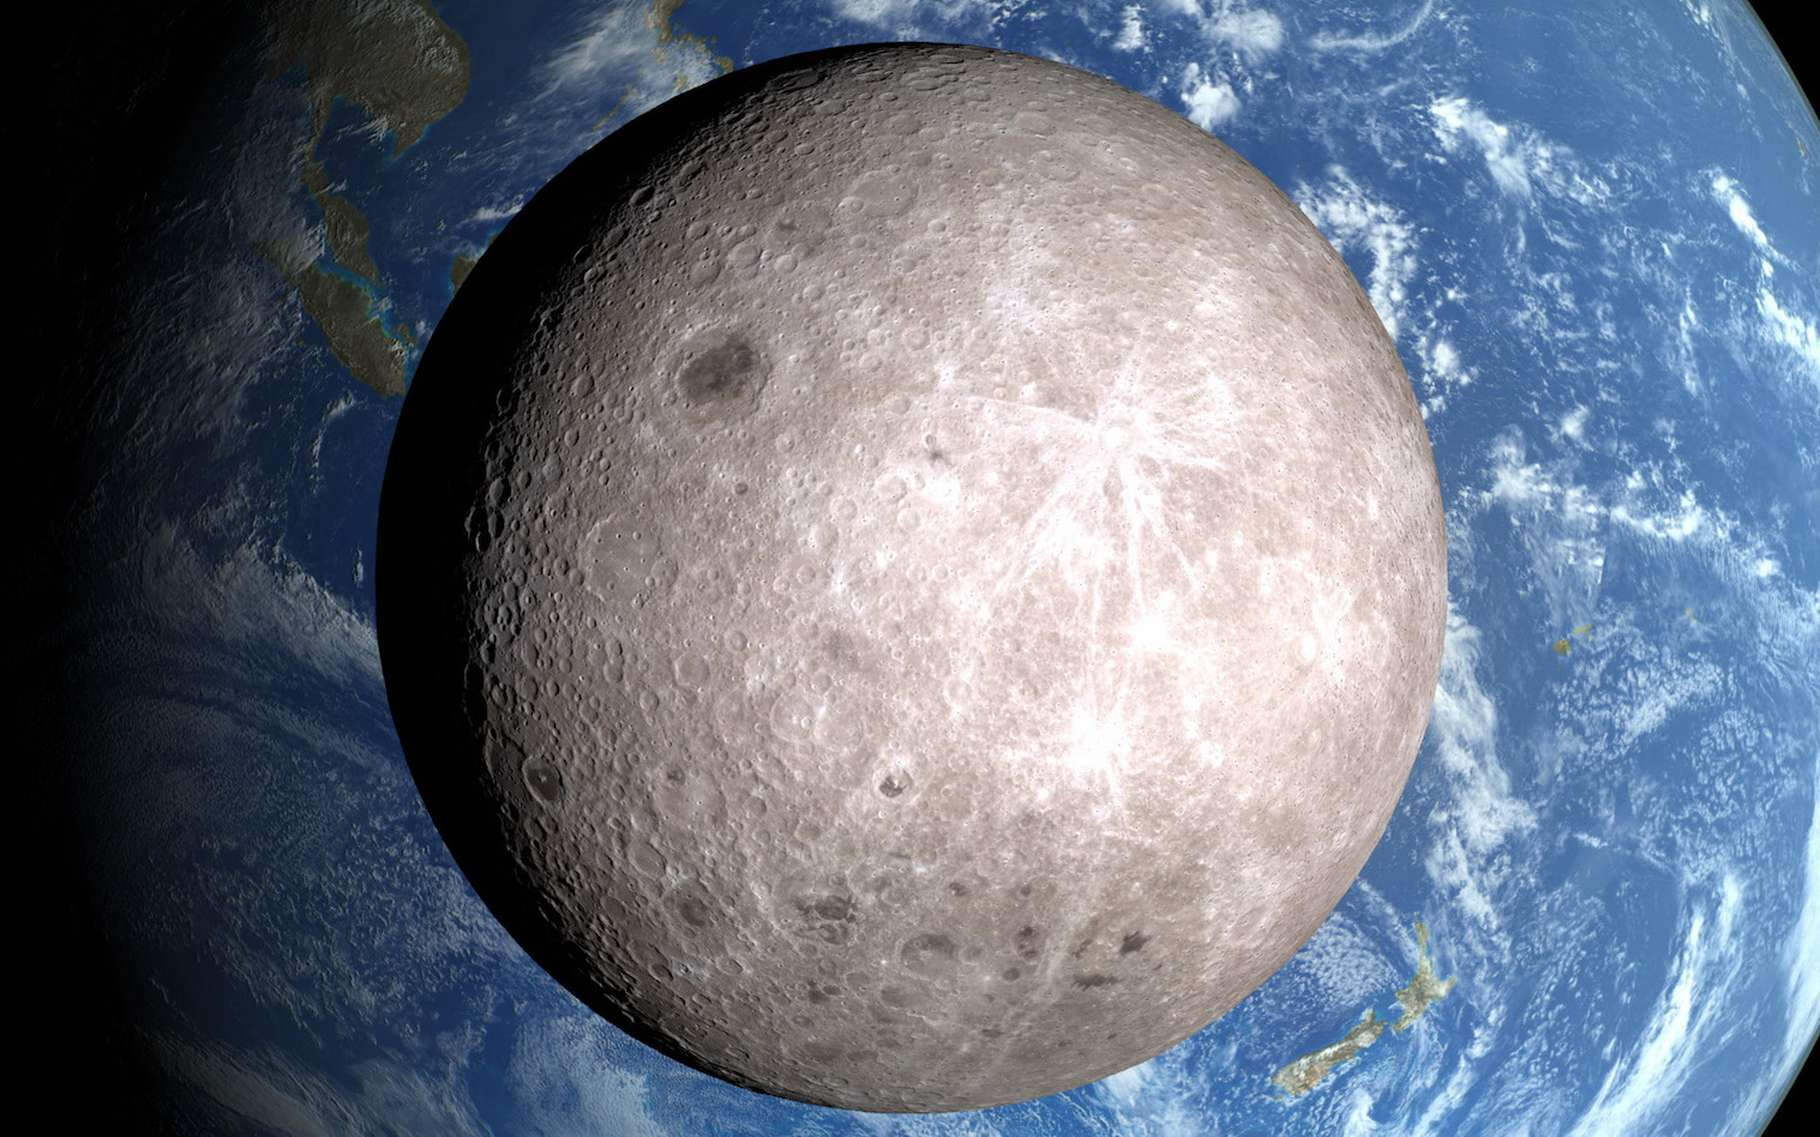 La face cachée de la Lune n'a pas encore livré tous ses secrets. Des chercheurs viennent d'y découvrir une anomalie de masse. © Nasa/LRO/Nasa's Goddard Space Flight Center Scientific Visualization Studio